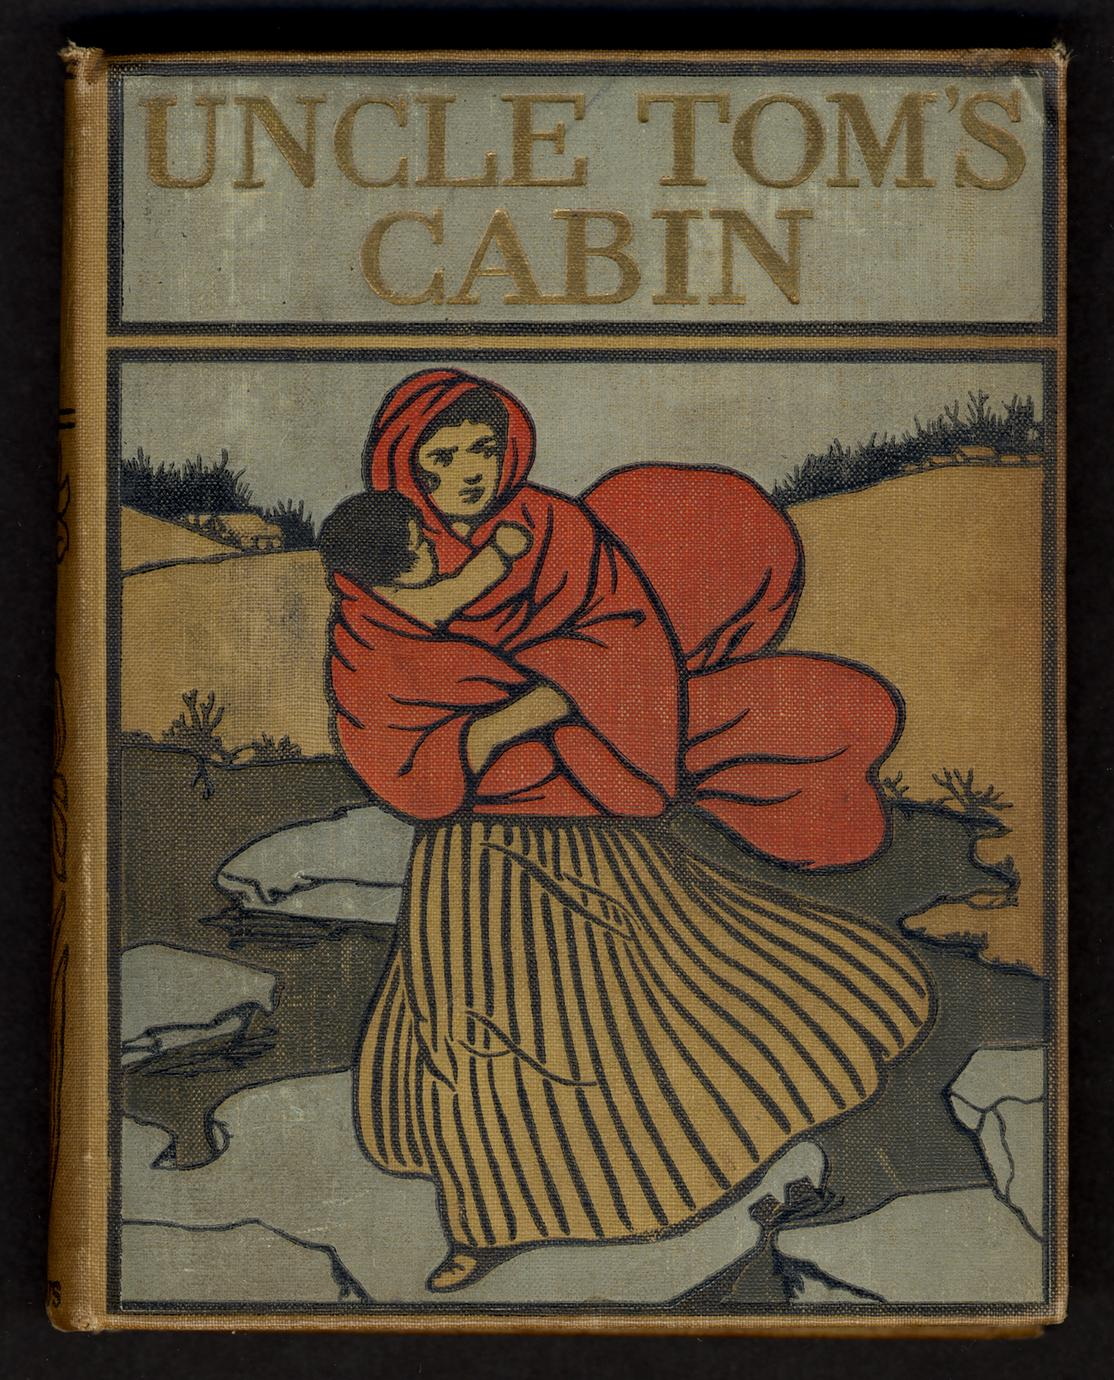 Uncle Tom's cabin, or, Life among the lowly (1 of 3)